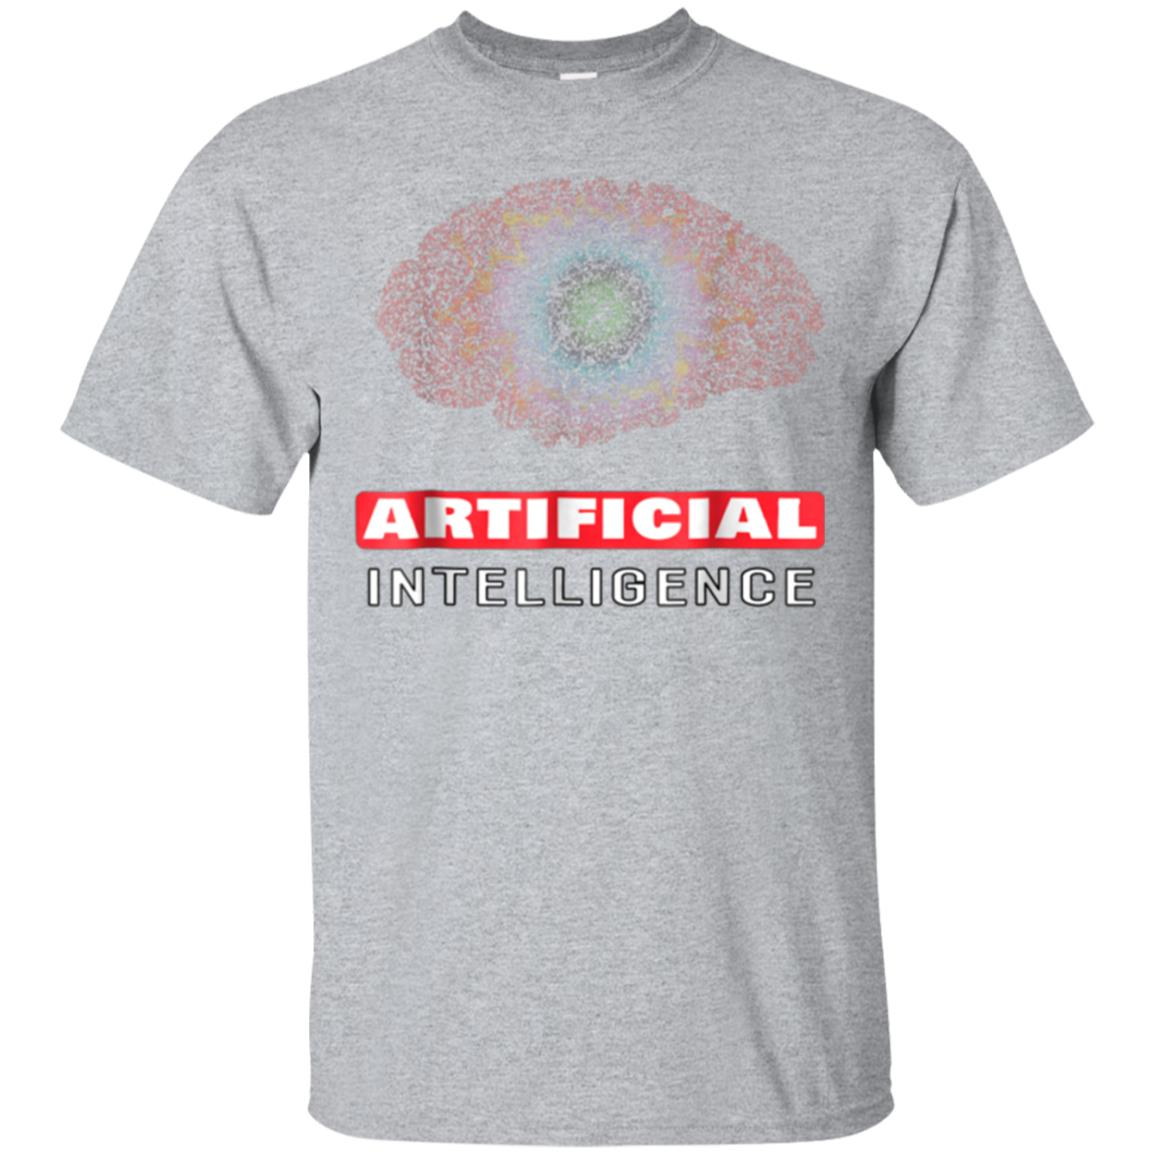 Mens Artificial Intelligence - Technology Robot T-Shirt For Me 99promocode